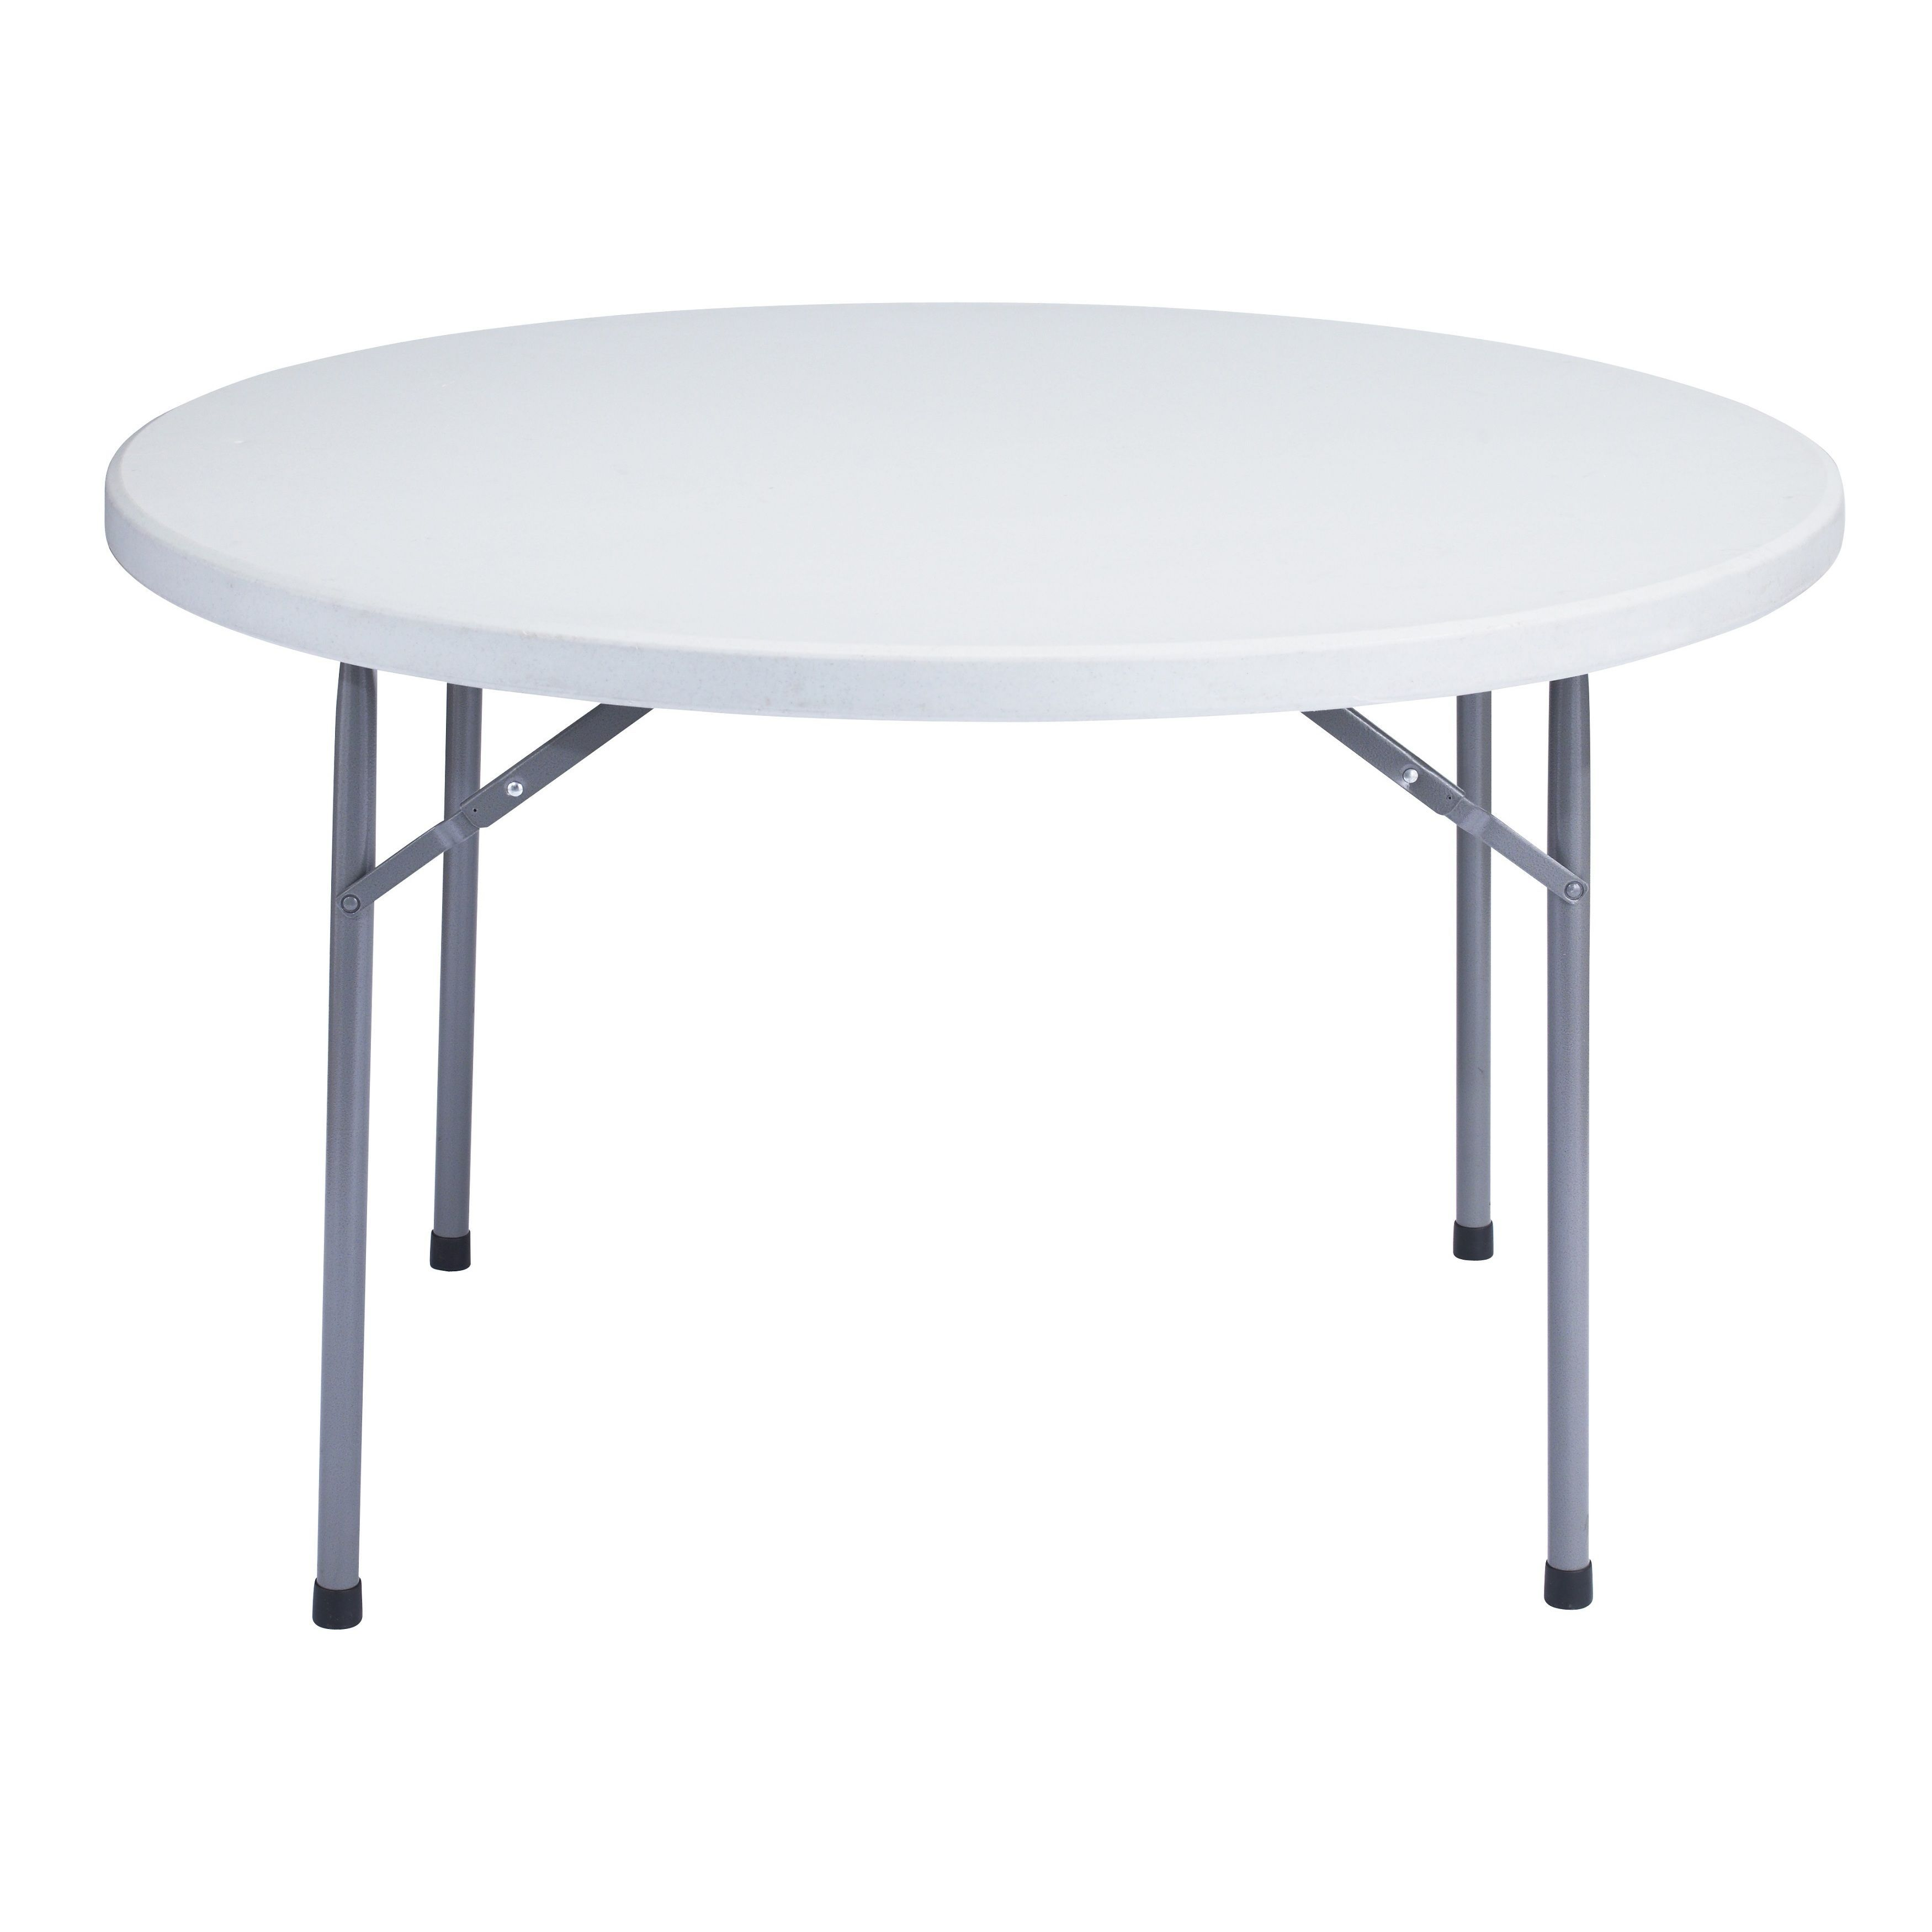 National Public Seating Round Blow Molded 48x48 in Folding Tables